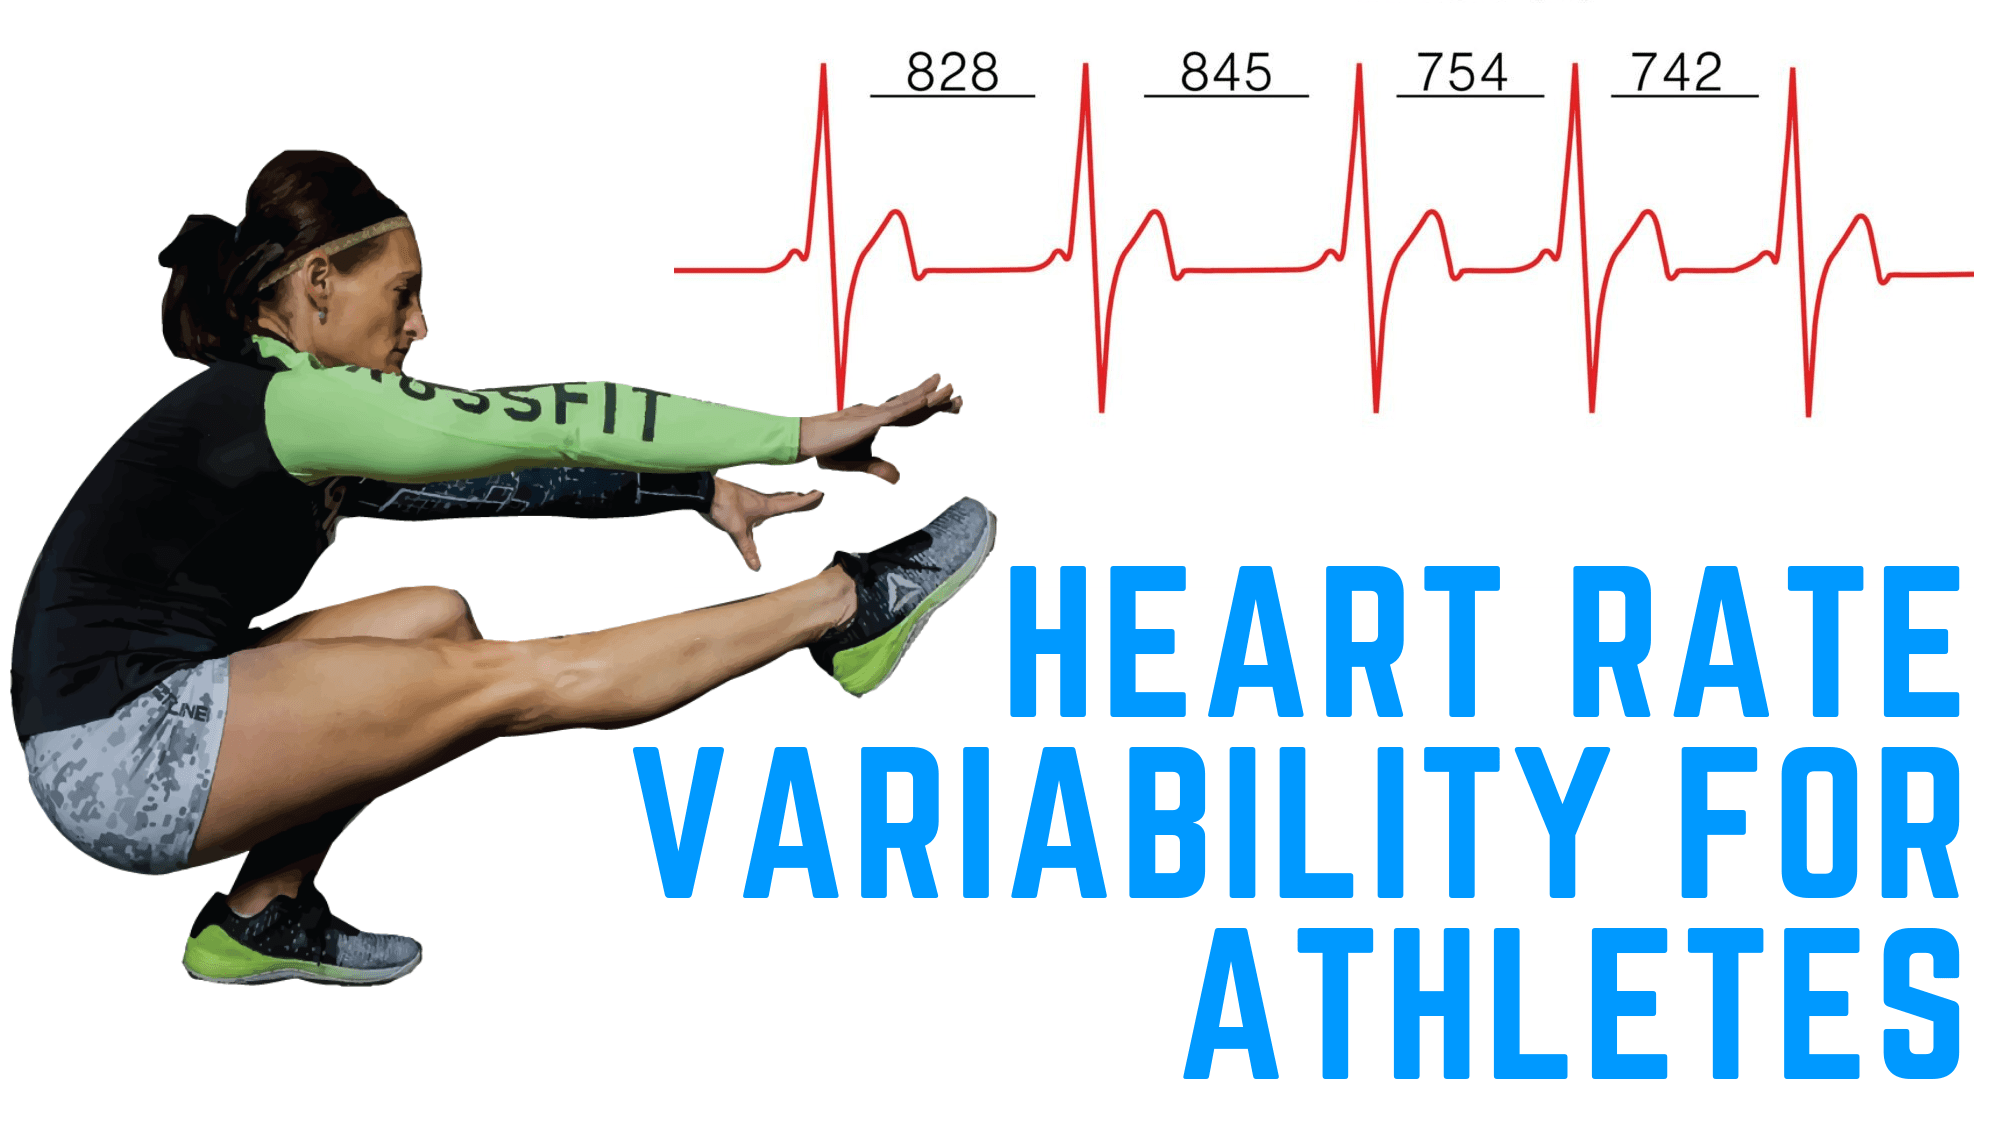 heart rate variability for athletes